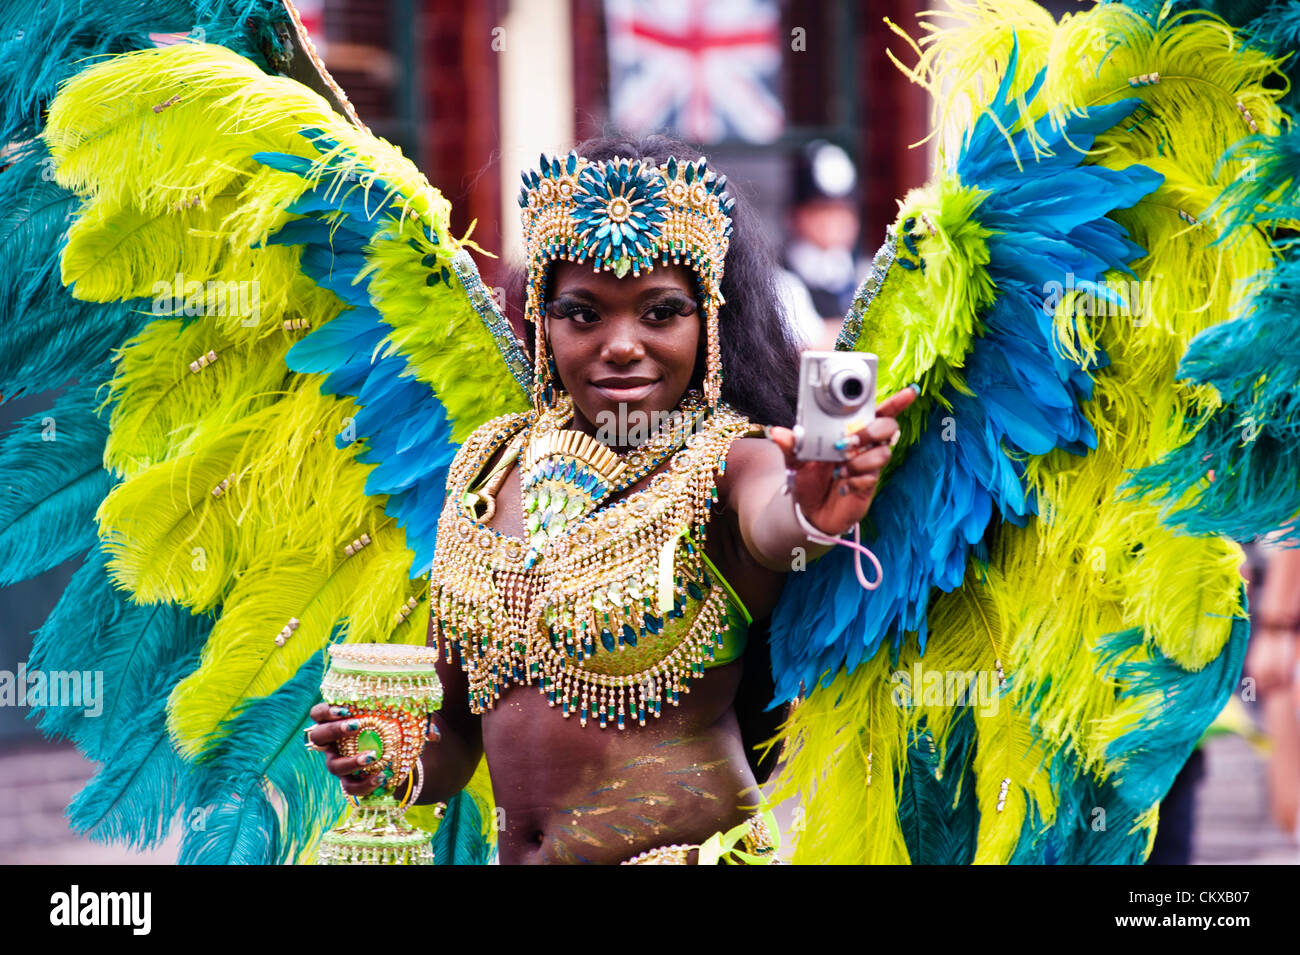 London, UK - 27 August 2012: a party-goer takes part at the parade during the annual Notting Hill Carnival. Credit: - Stock Image